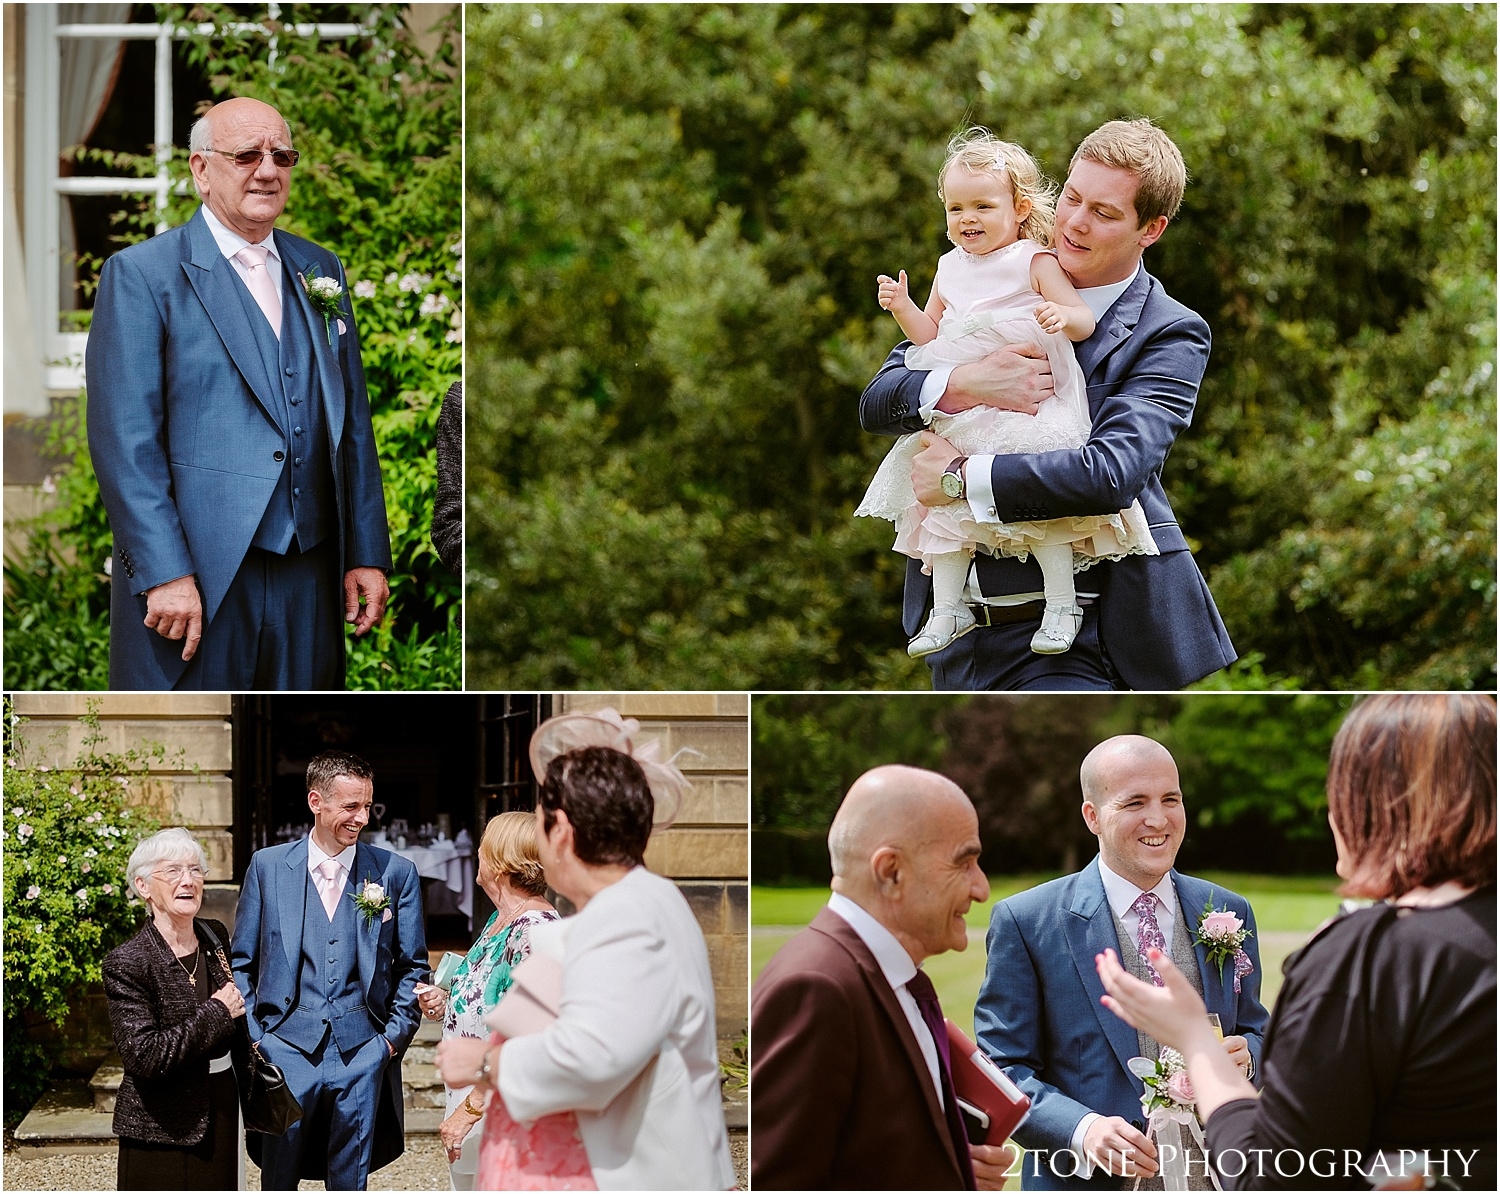 Crathorne Hall wedding 43.jpg